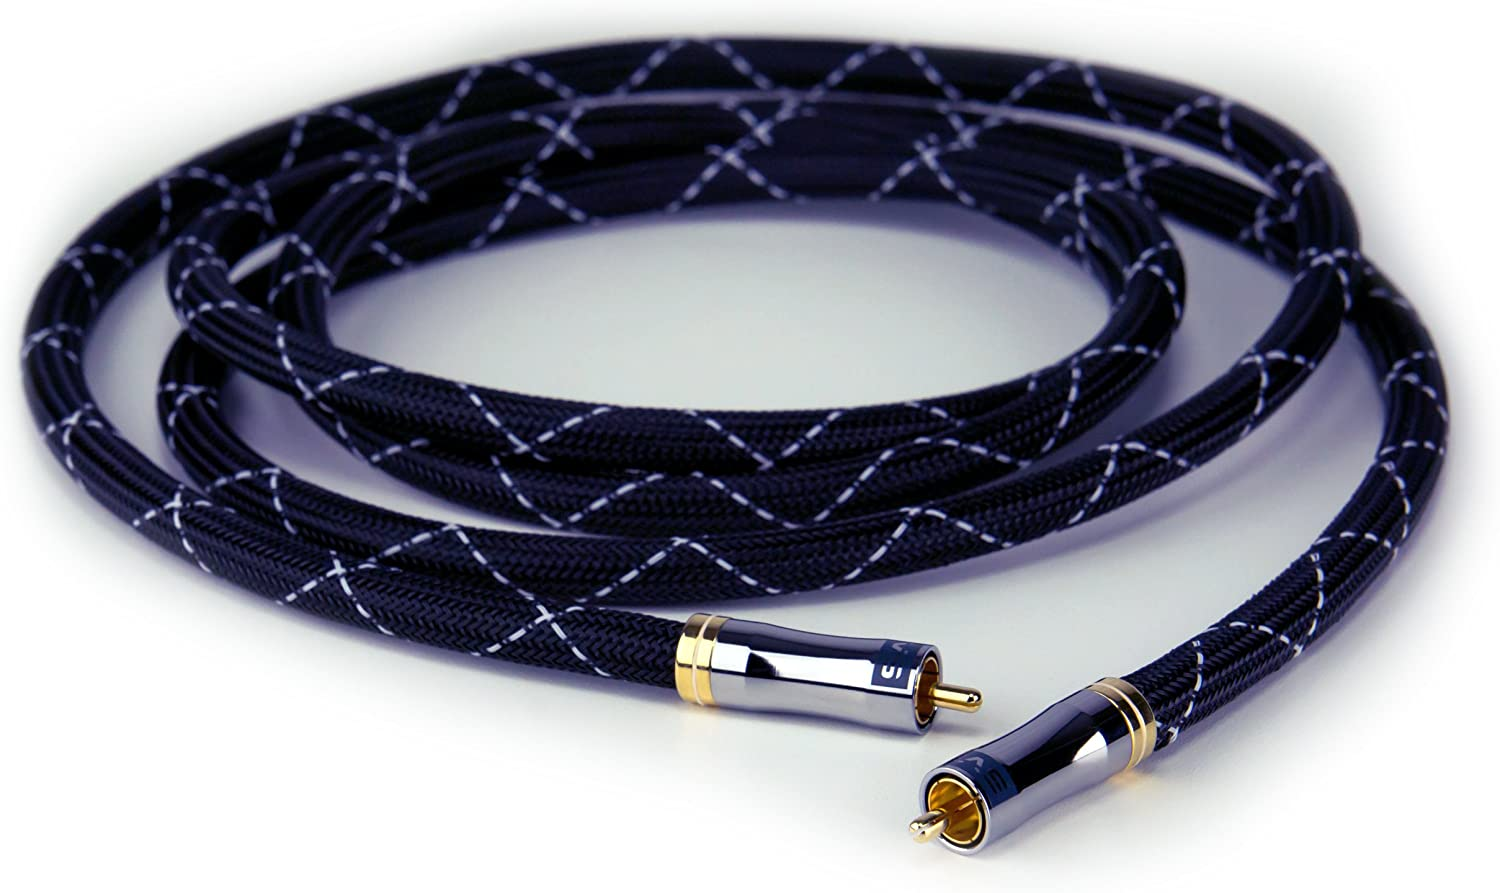 SVS SoundPath RCA Subwoofer/Audio Cable: Home Audio & Theater